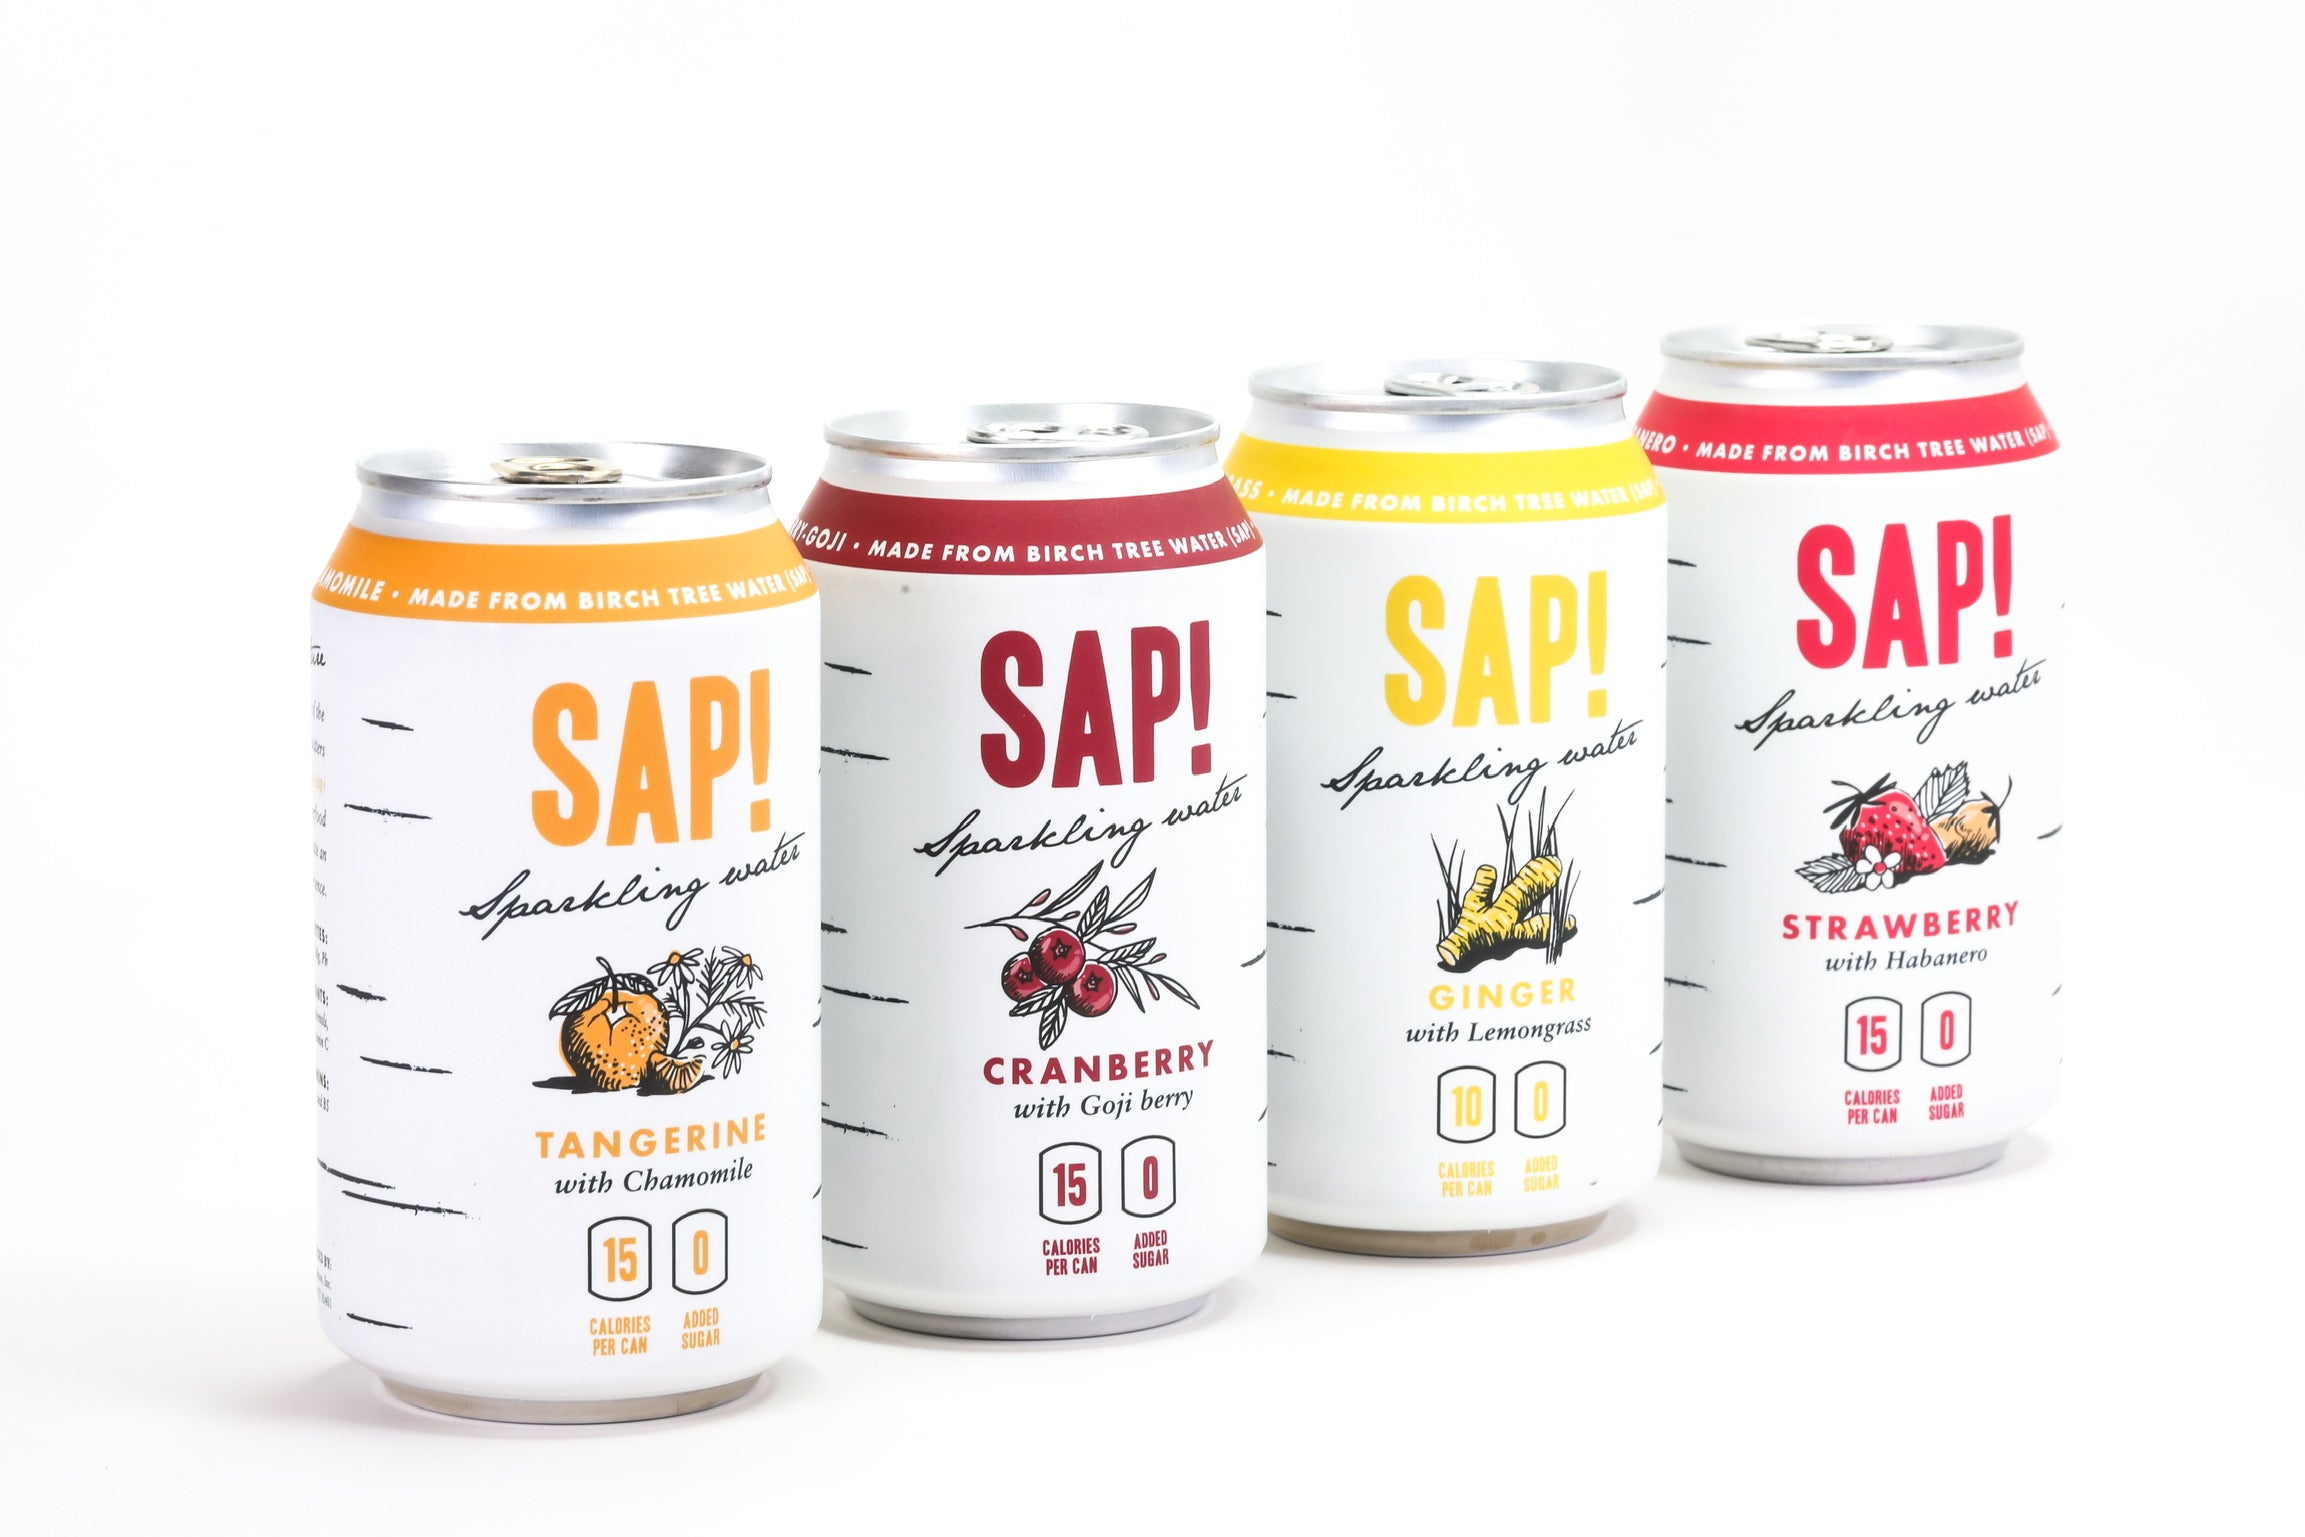 New Sparkling Water Sampler Pack - 24 cans (6 of Each Flavor)